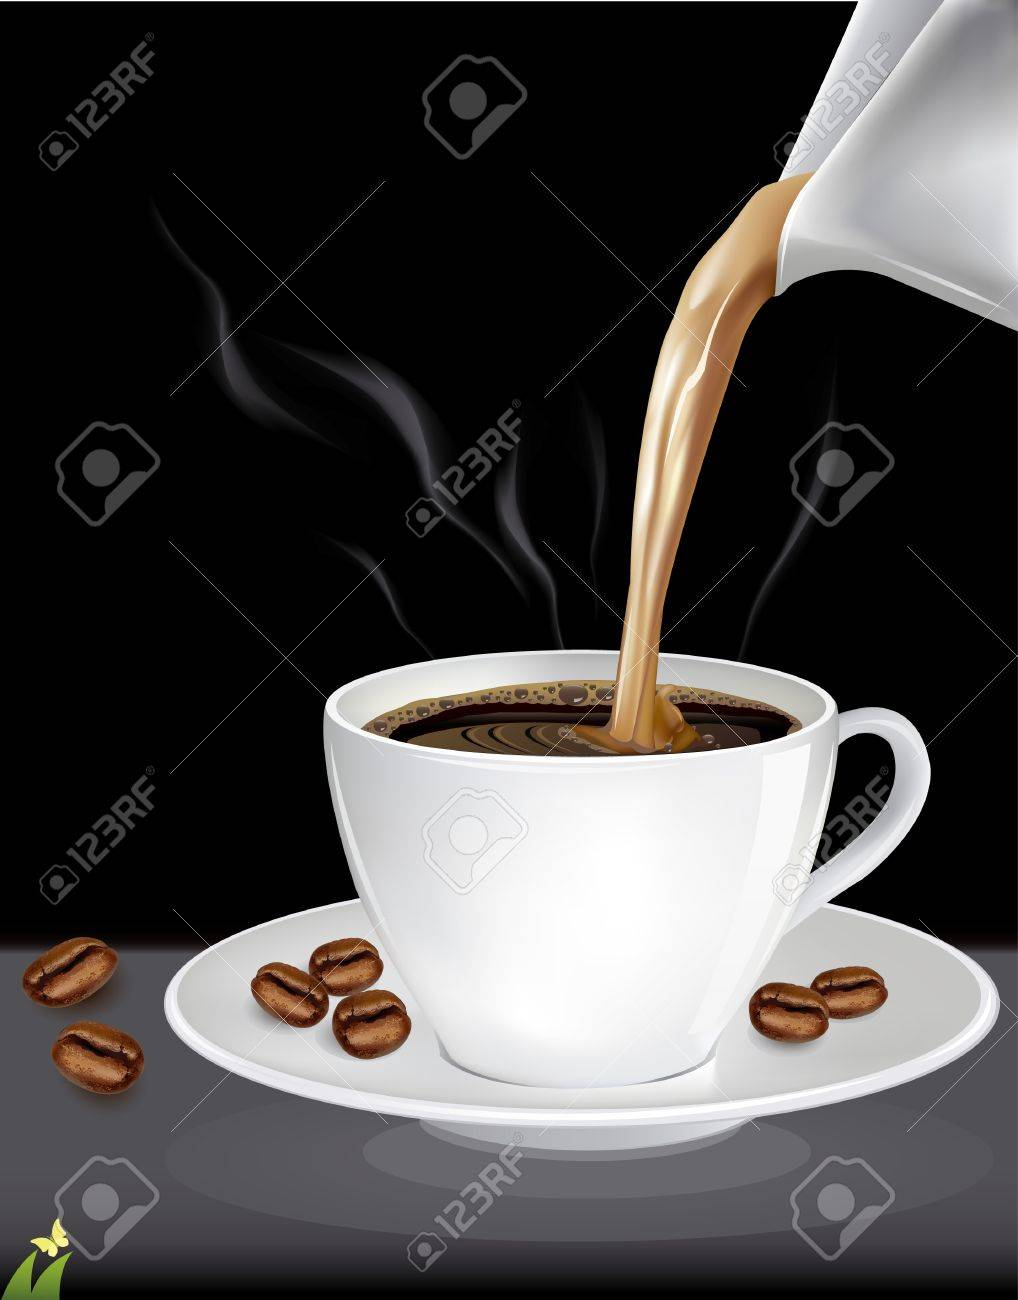 Cup of coffee, vector illustration Stock Vector - 21873990